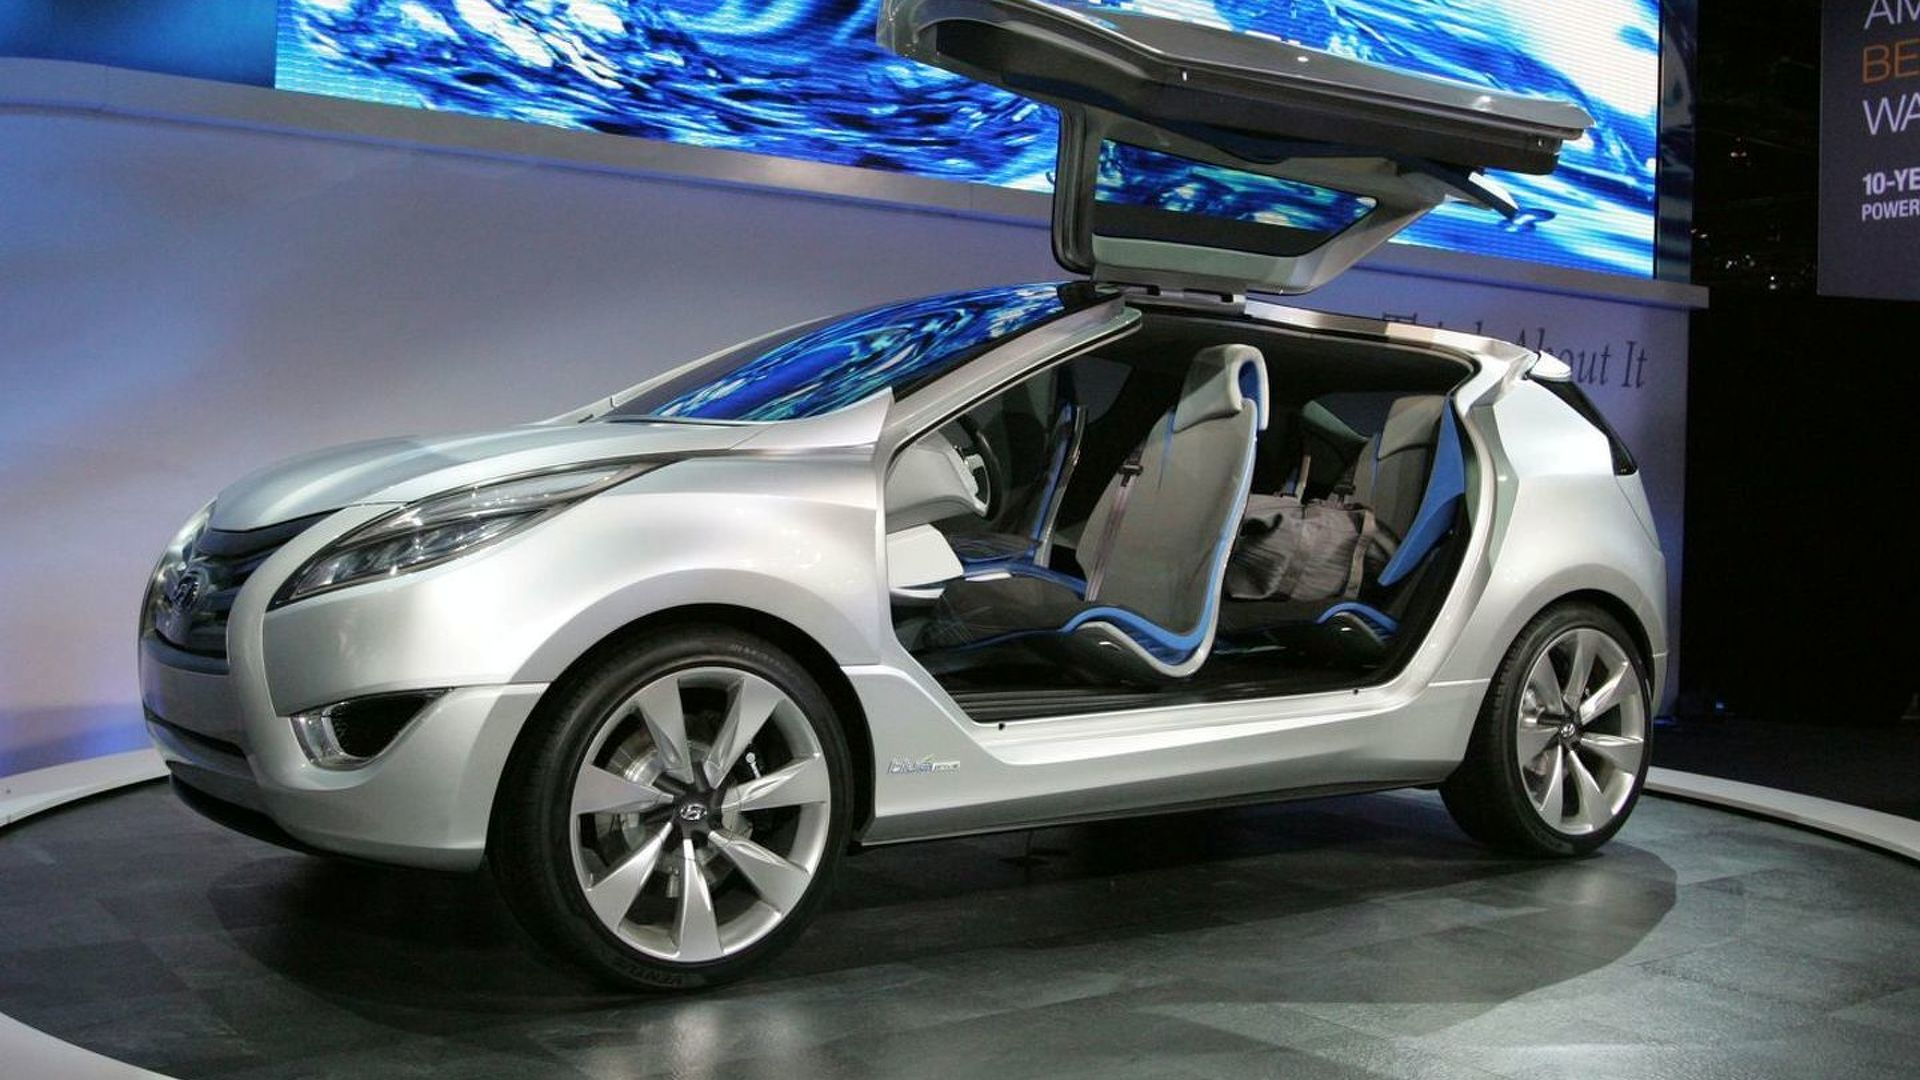 Hyundai Nuvis Concept World Premiere at New York Auto Show